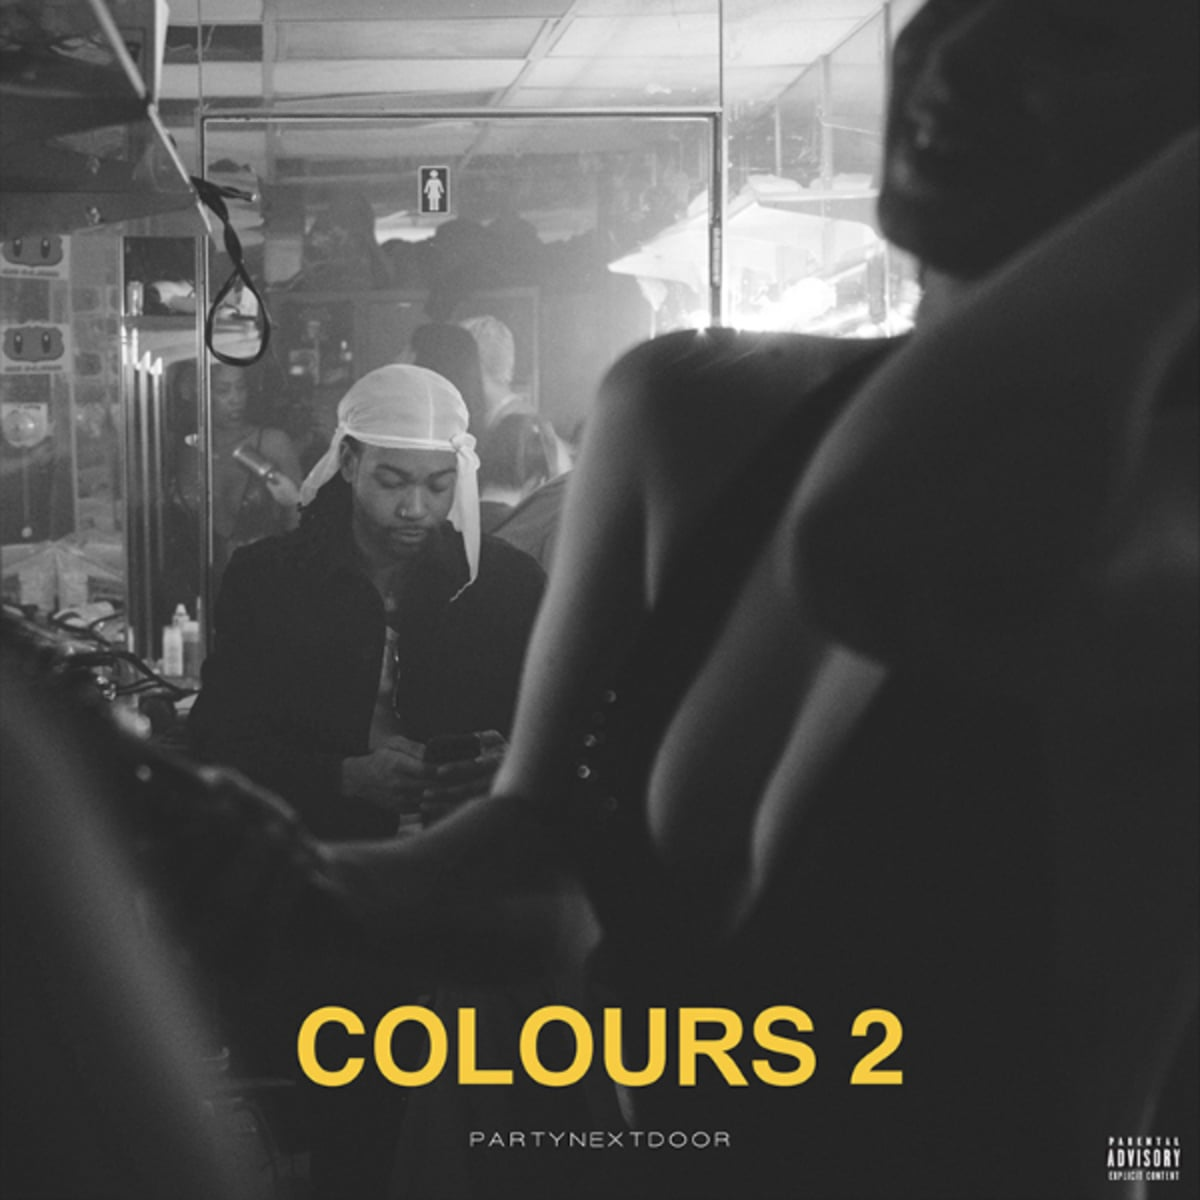 Surprise!  PARTYNEXTDOOR just dropped a new EP: https://t.co/Kf41oe9aLk https://t.co/QC9jkrgJaS